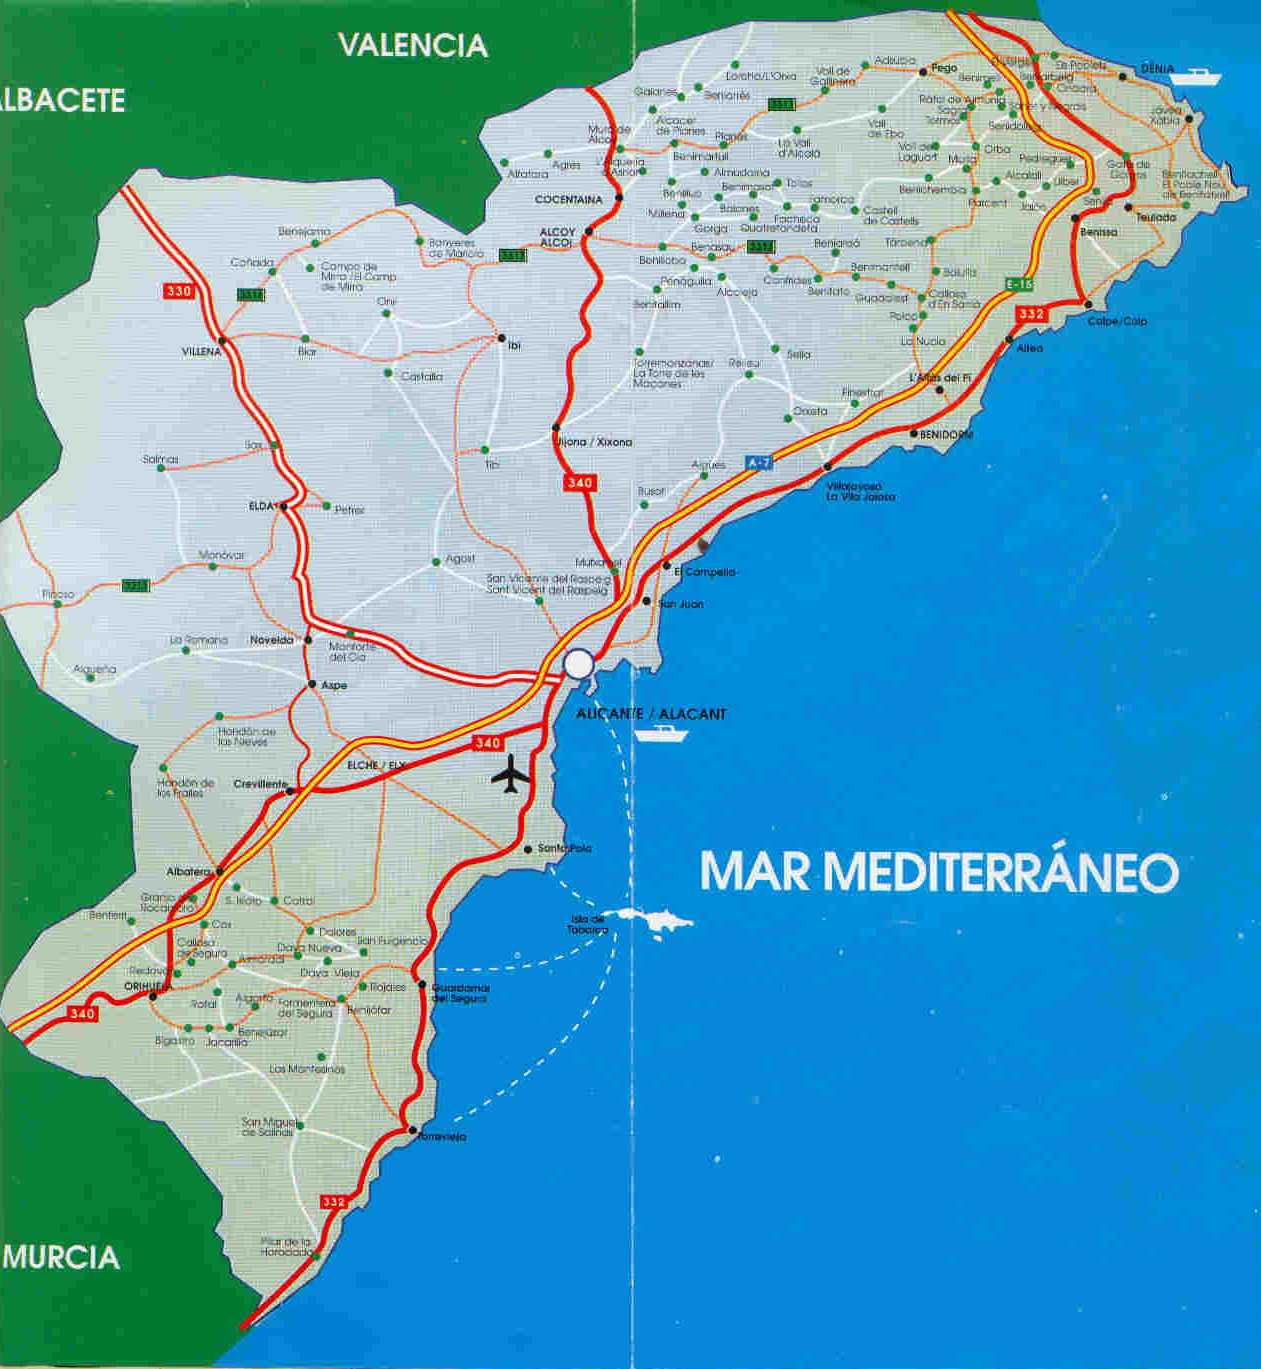 Province of Alicante road map